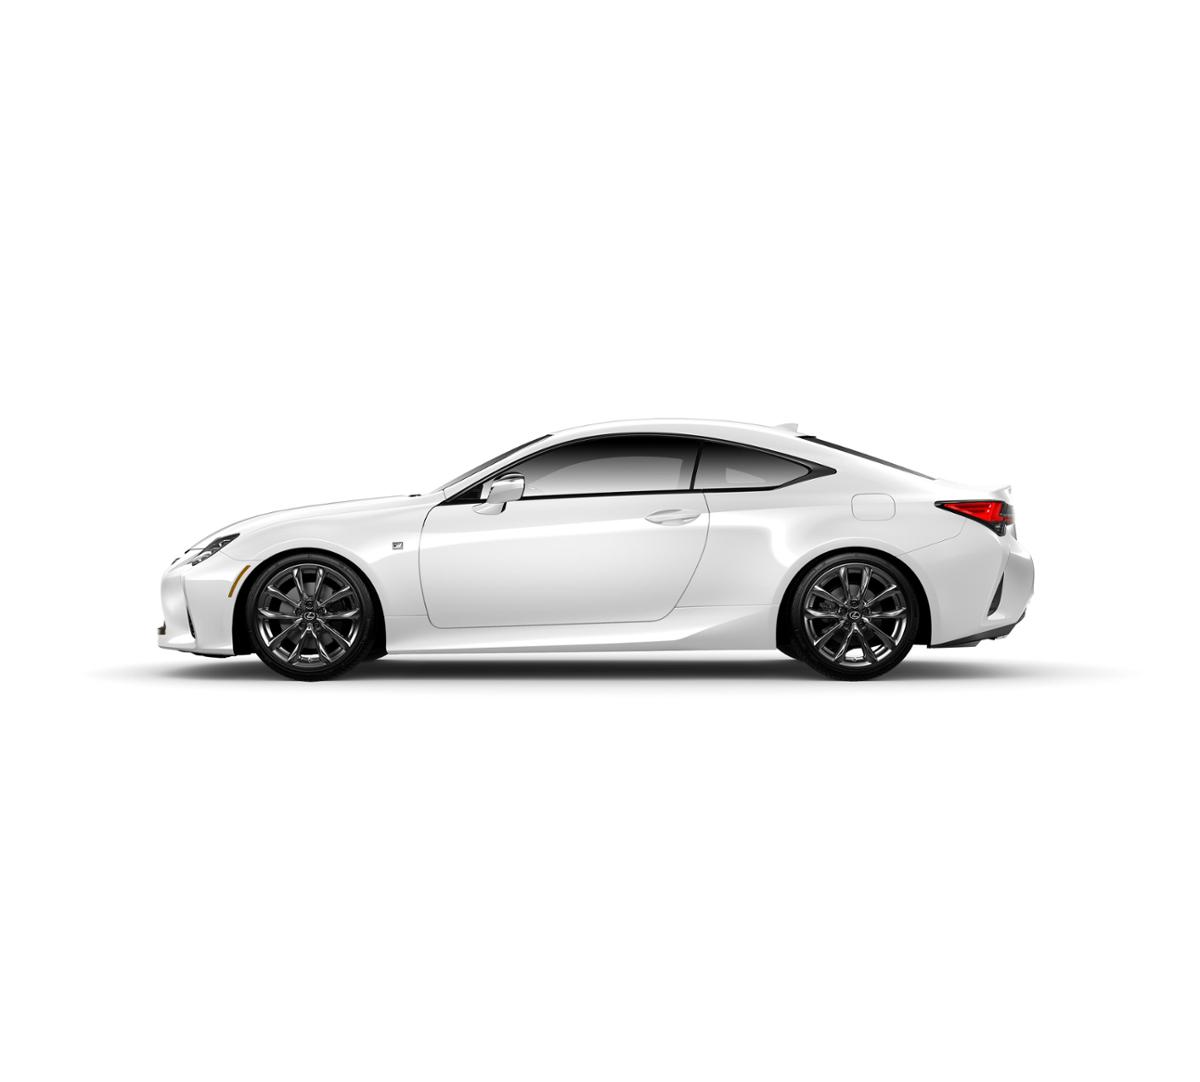 Lexus Dealership In Va: Ultra White 2019 Lexus RC 350 F SPORT Alexandria